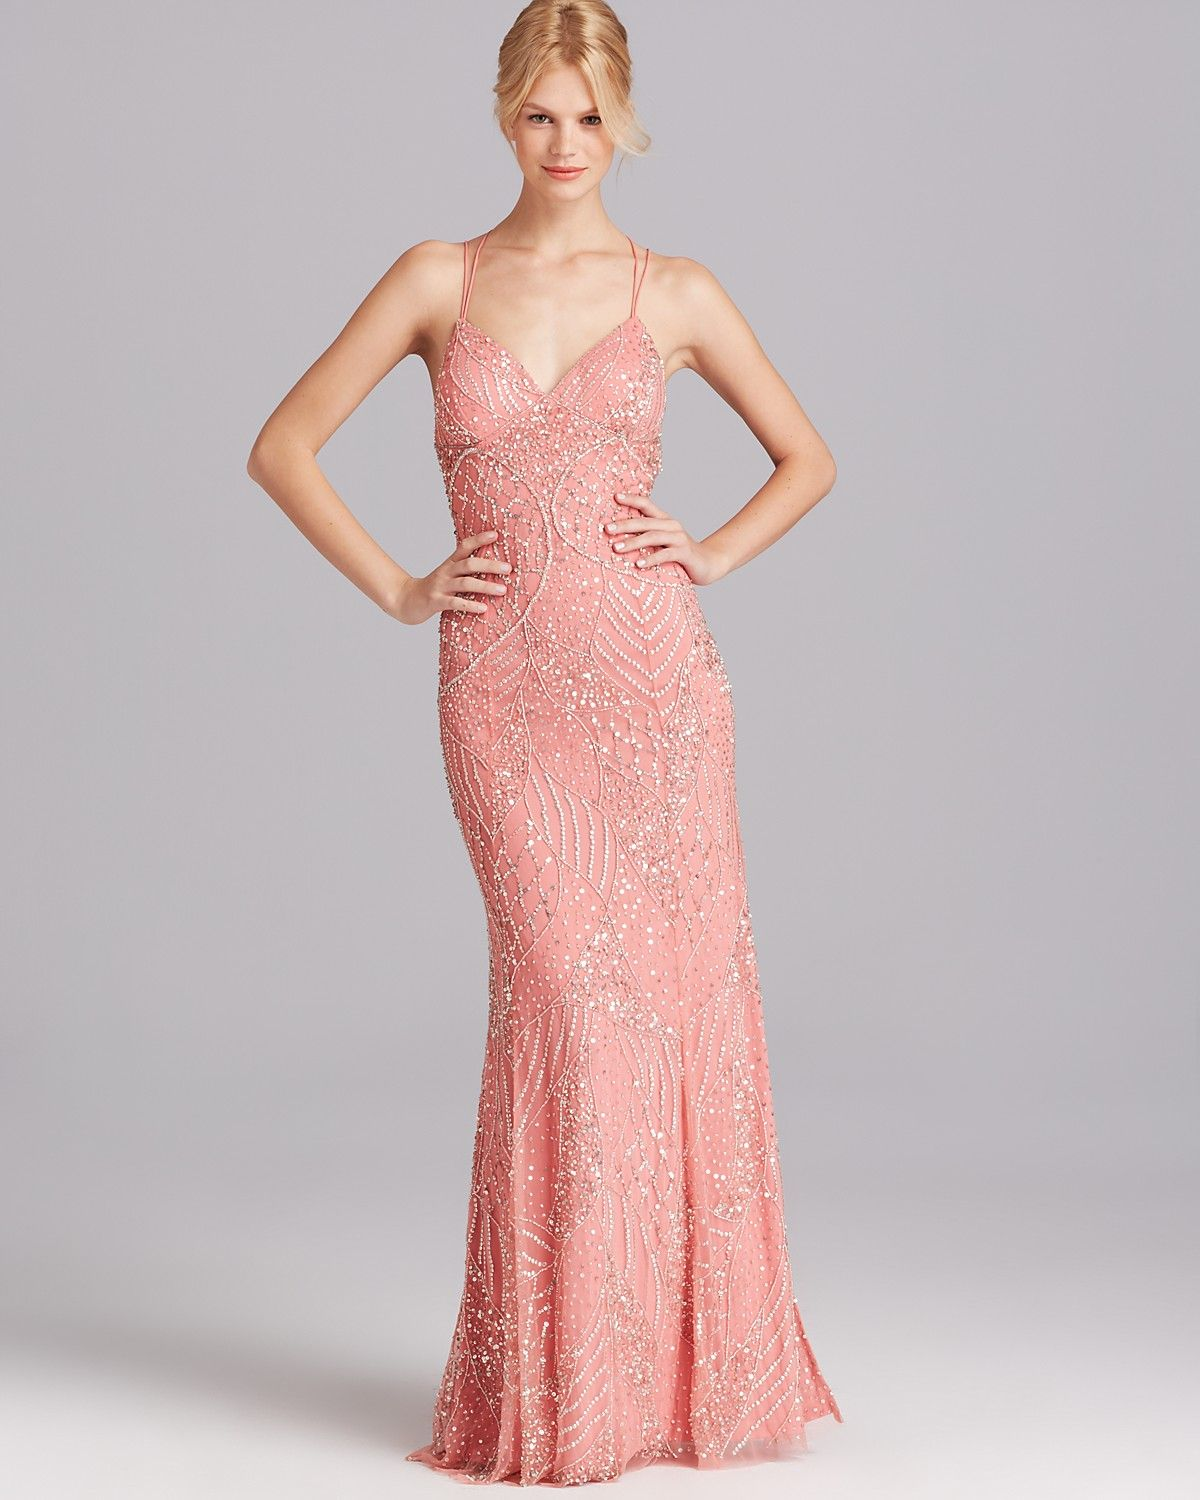 Adrianna Papell Gown Spaghetti Strap Beaded Open Back Women Bloomingdale S Gowns Coral Bridesmaid Dresses Glam Dresses [ 1500 x 1200 Pixel ]